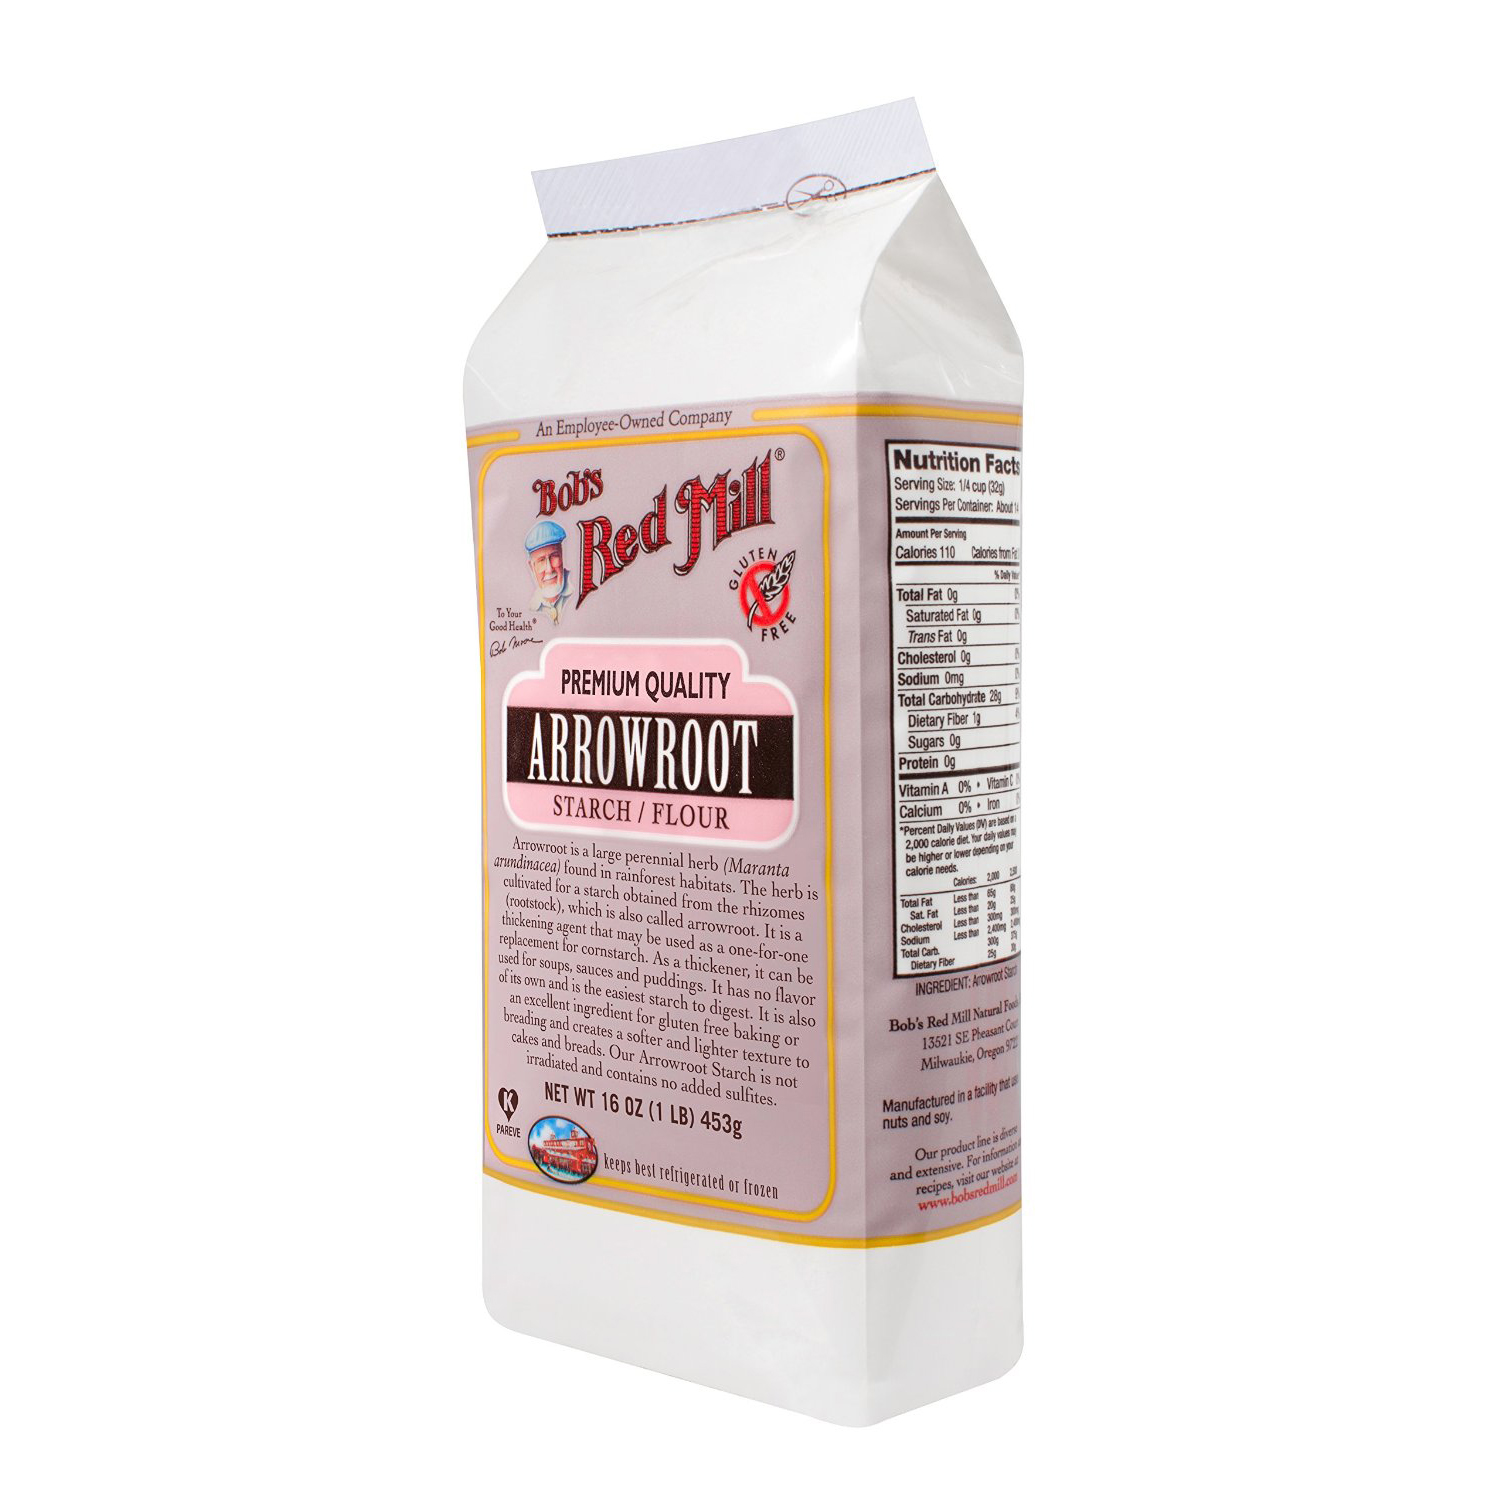 Our favorite brand of arrowroot flour